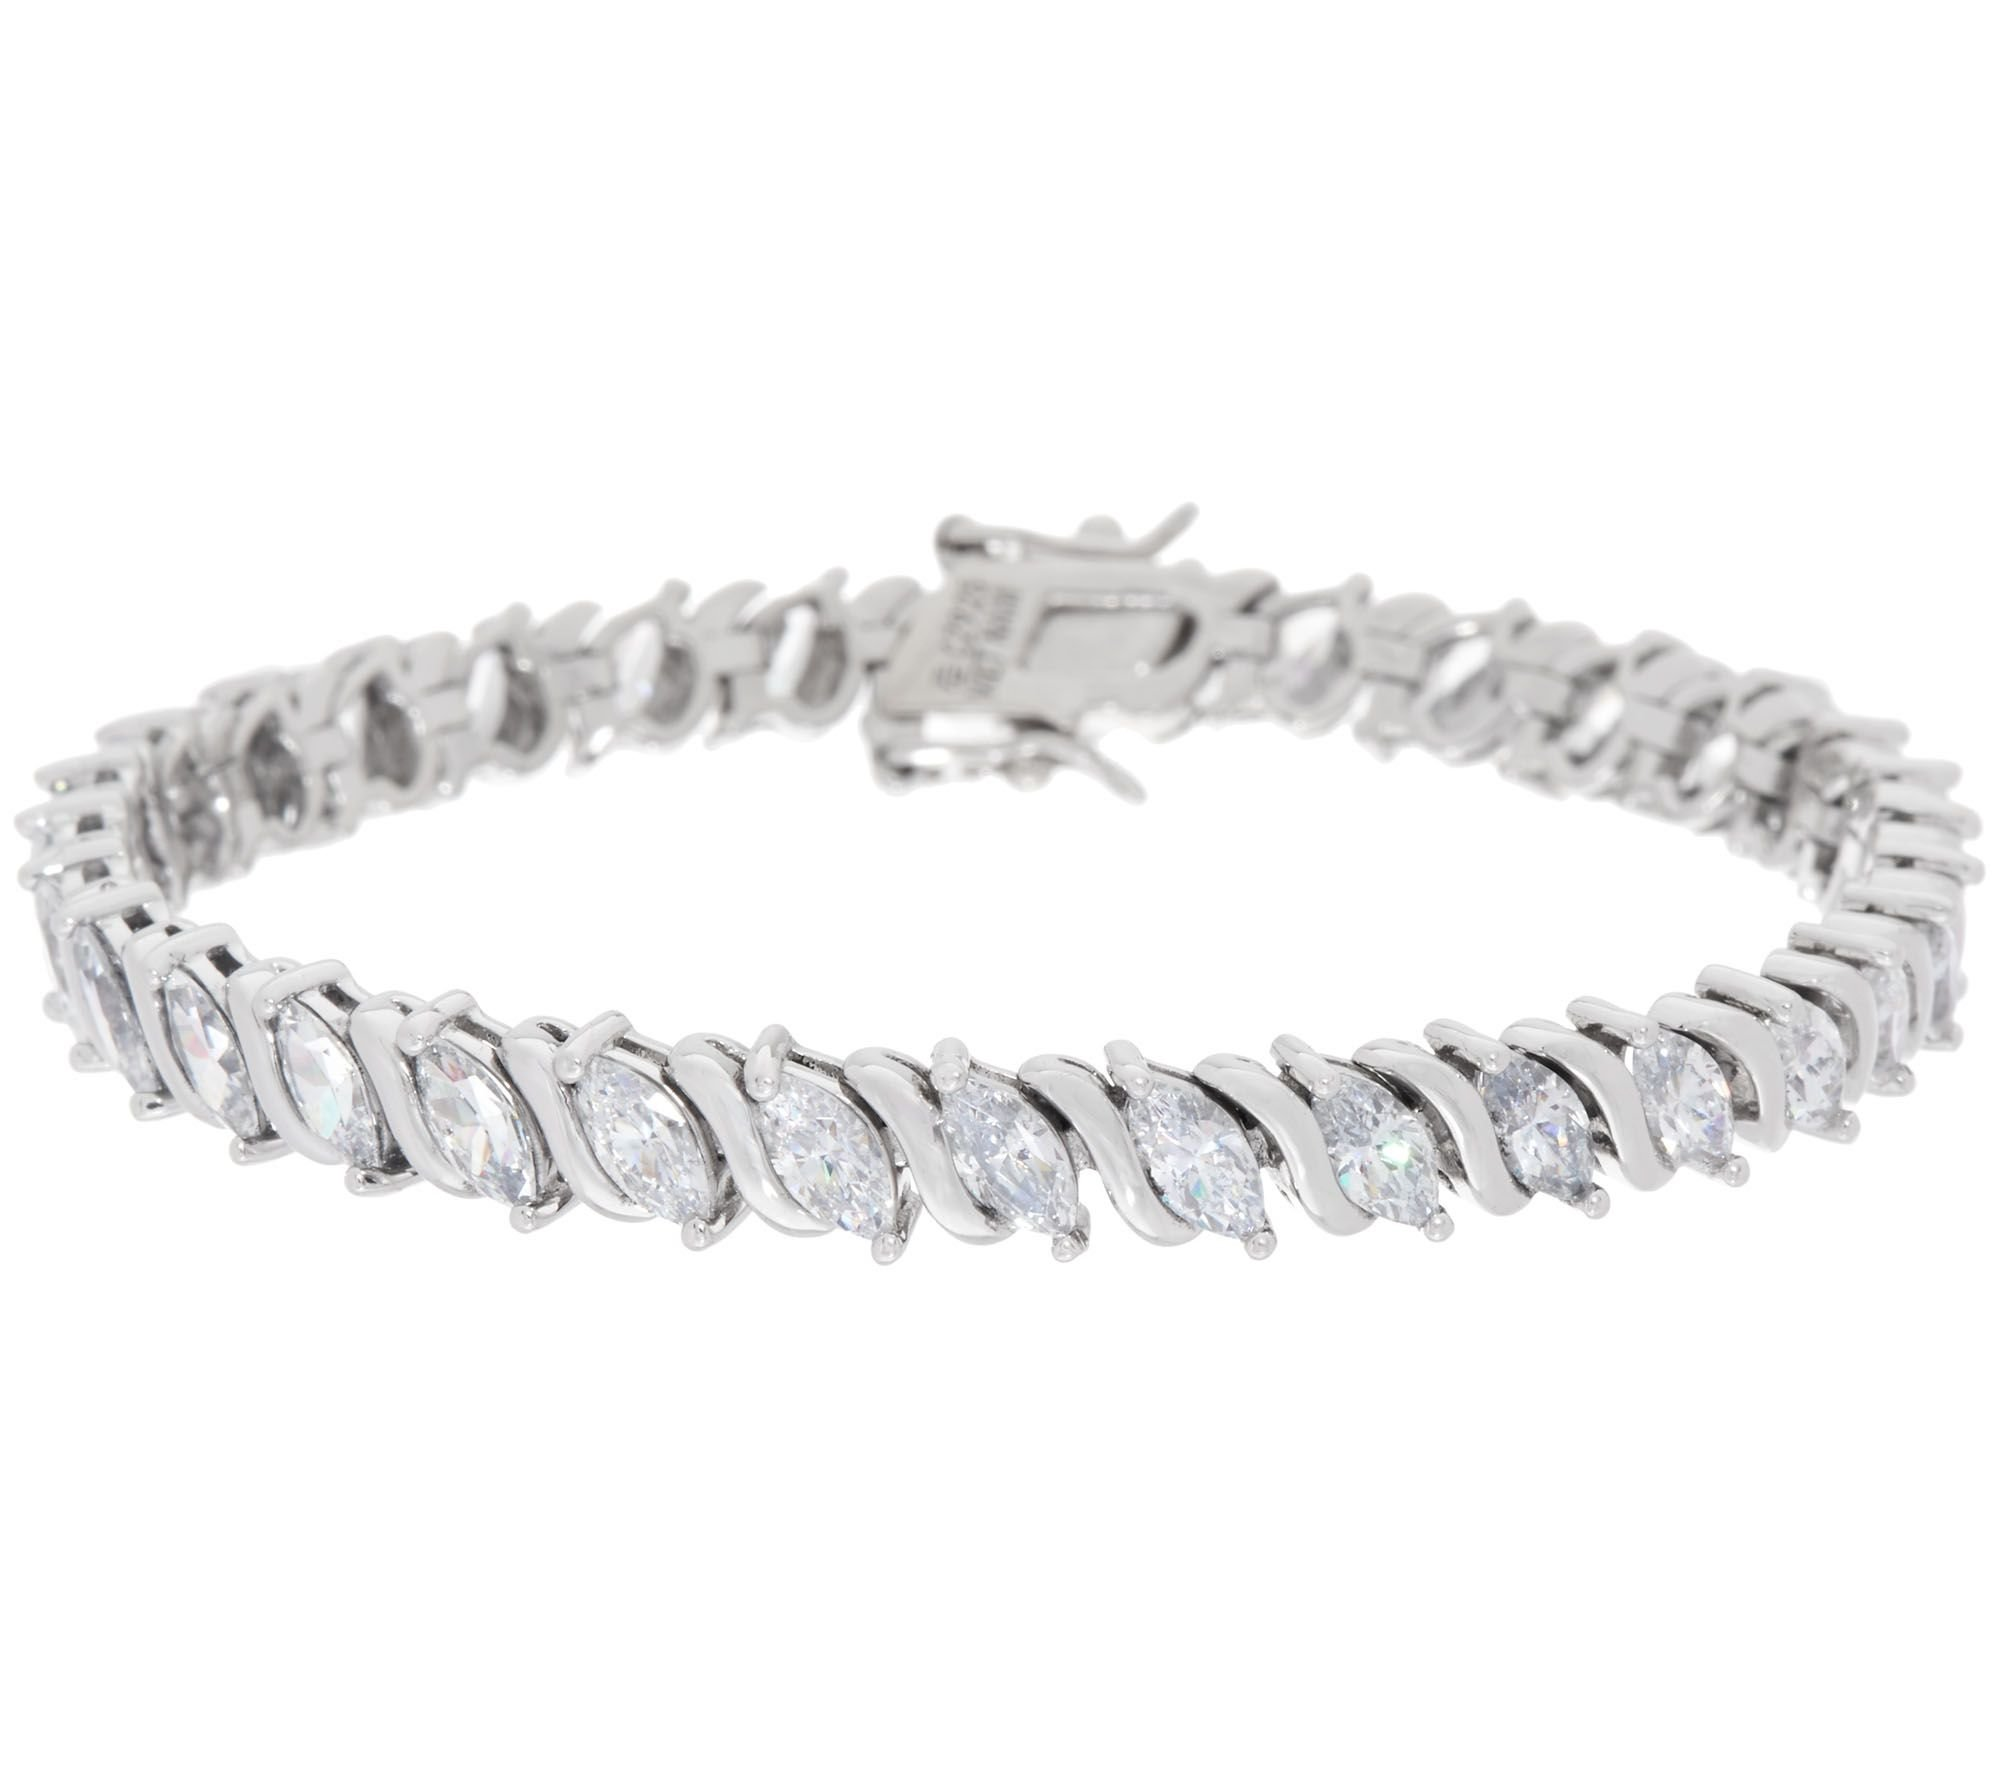 Silvernshine Jewels 8.65 Ct Prong-Set Marquise Cut D/VVS1 Diamond 14K White Gold Plated Tennis Bracelet by Silvernshine Jewels